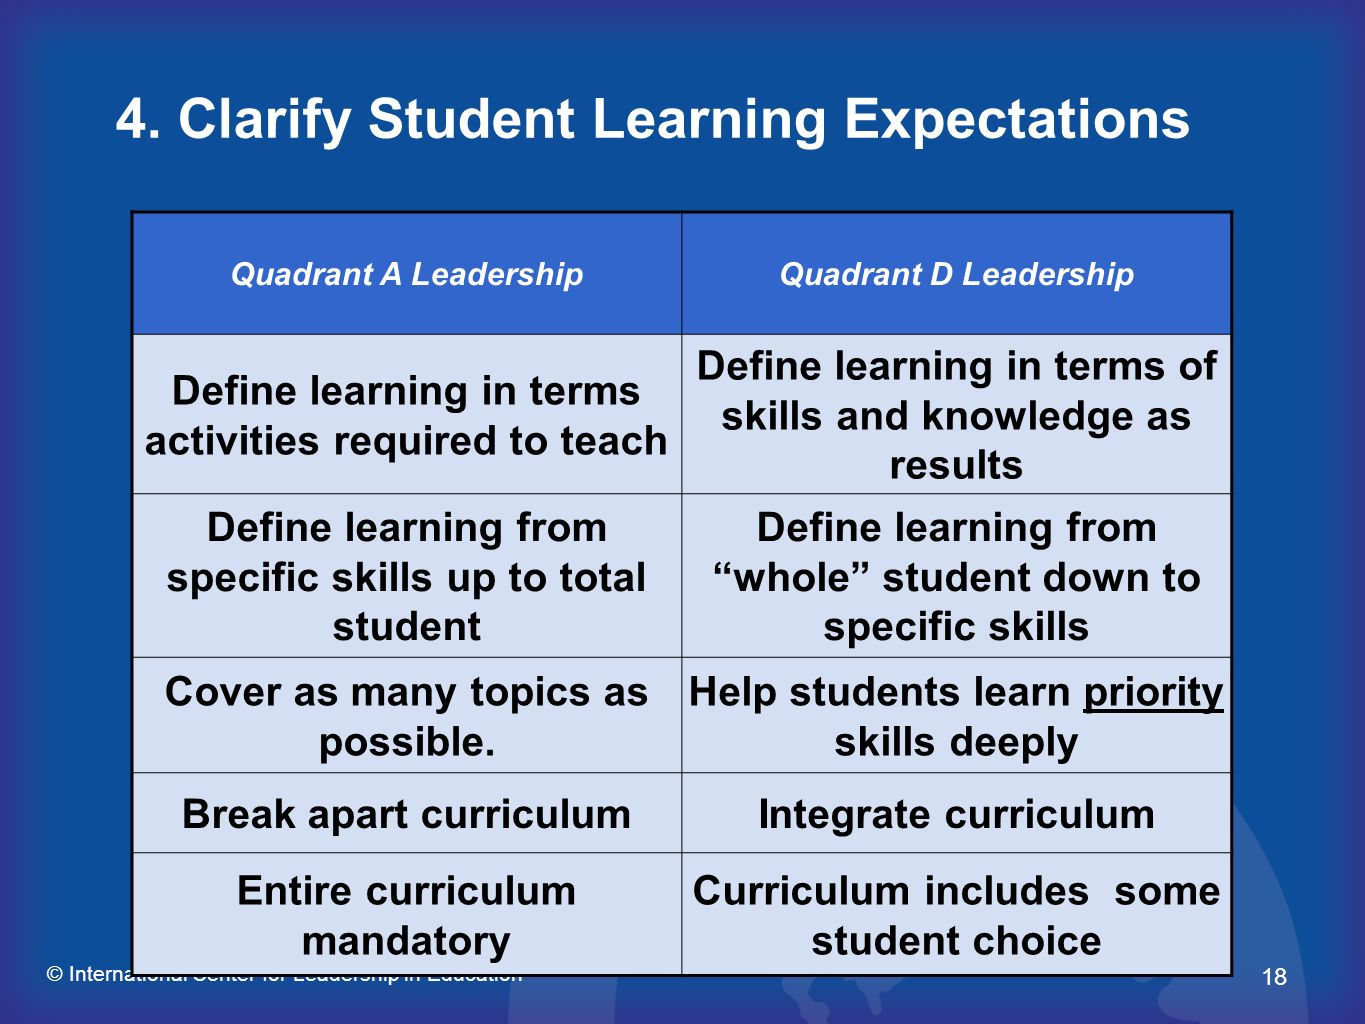 4. Clarify Student Learning Expectations